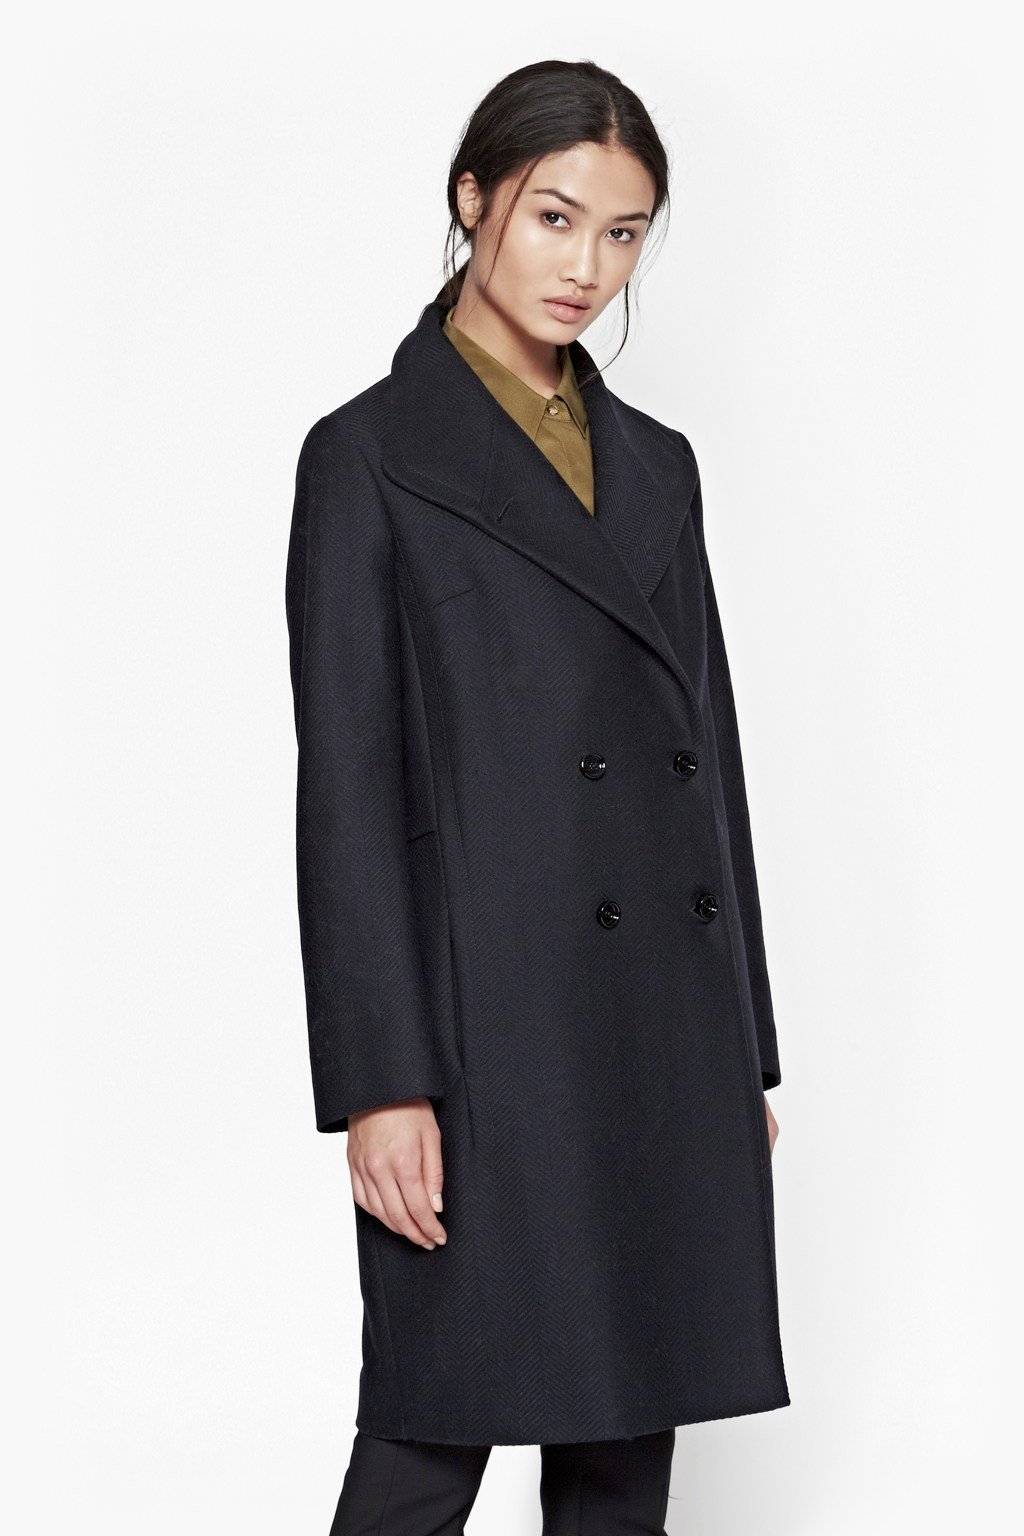 Discover the women's wool coats collection at ASOS. Shop from a range of camel, grey and black wool coats available at ASOS. Shop your favourite style!